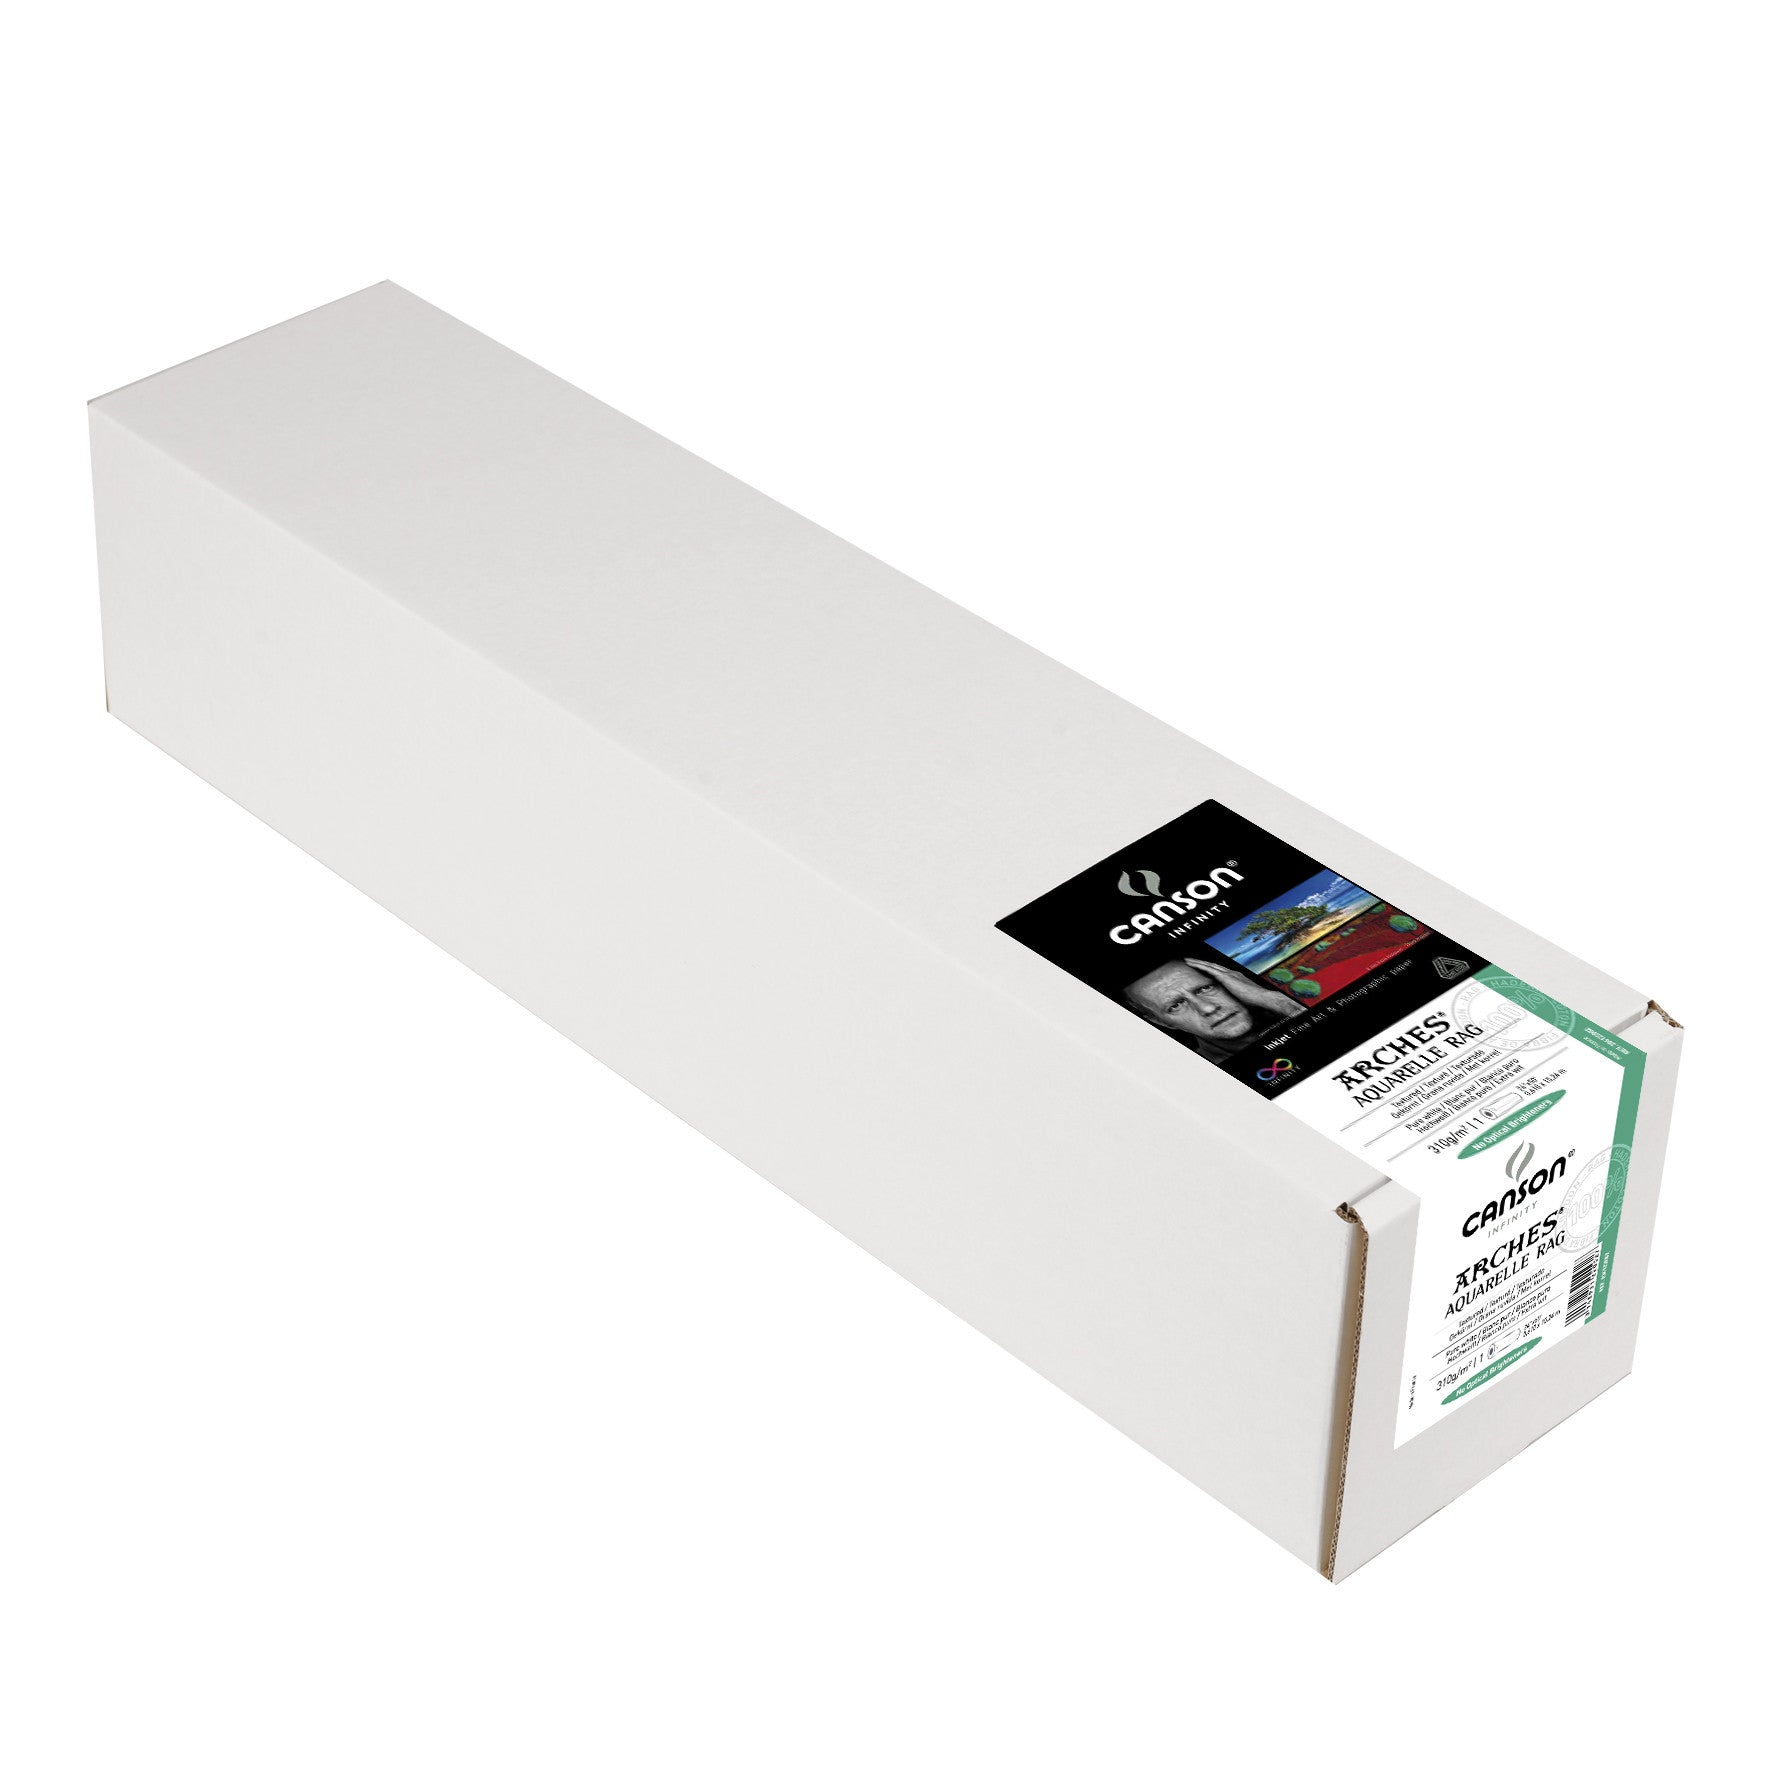 "Canson Infinity Aquarelle Rag - 310gsm - 24""x50' roll"